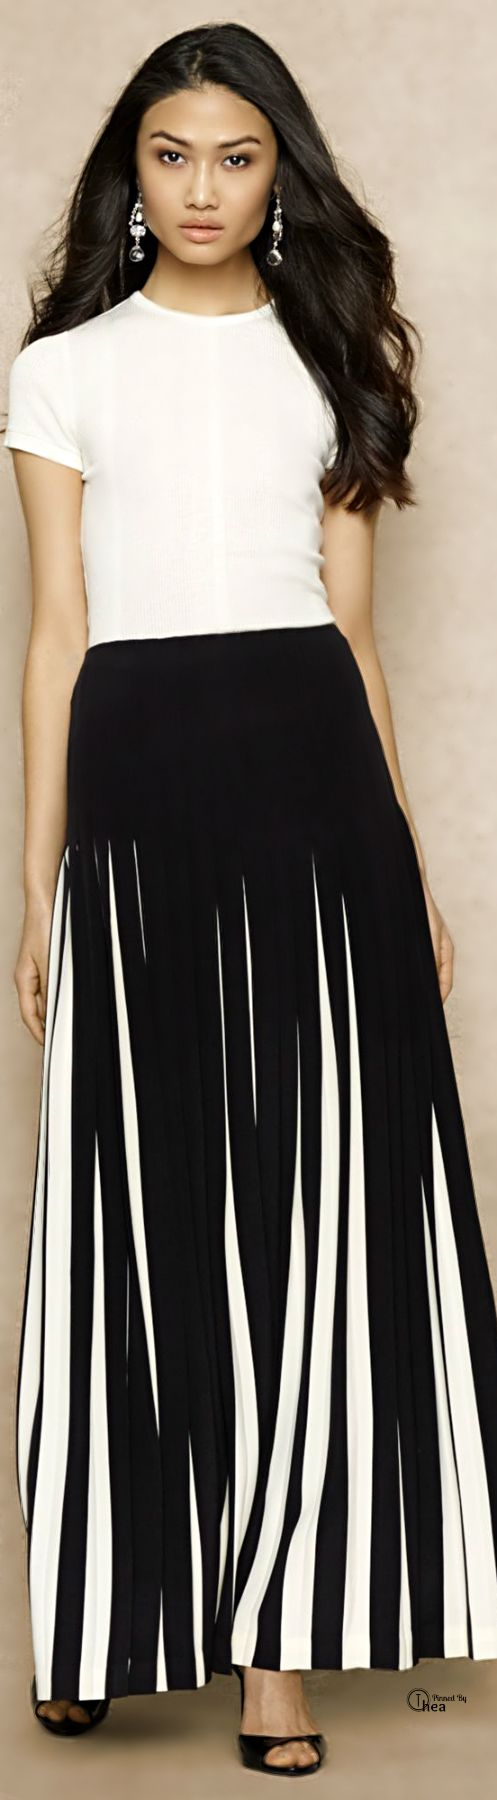 33 Best Images About Black Or White Maxi Skirts On Pinterest